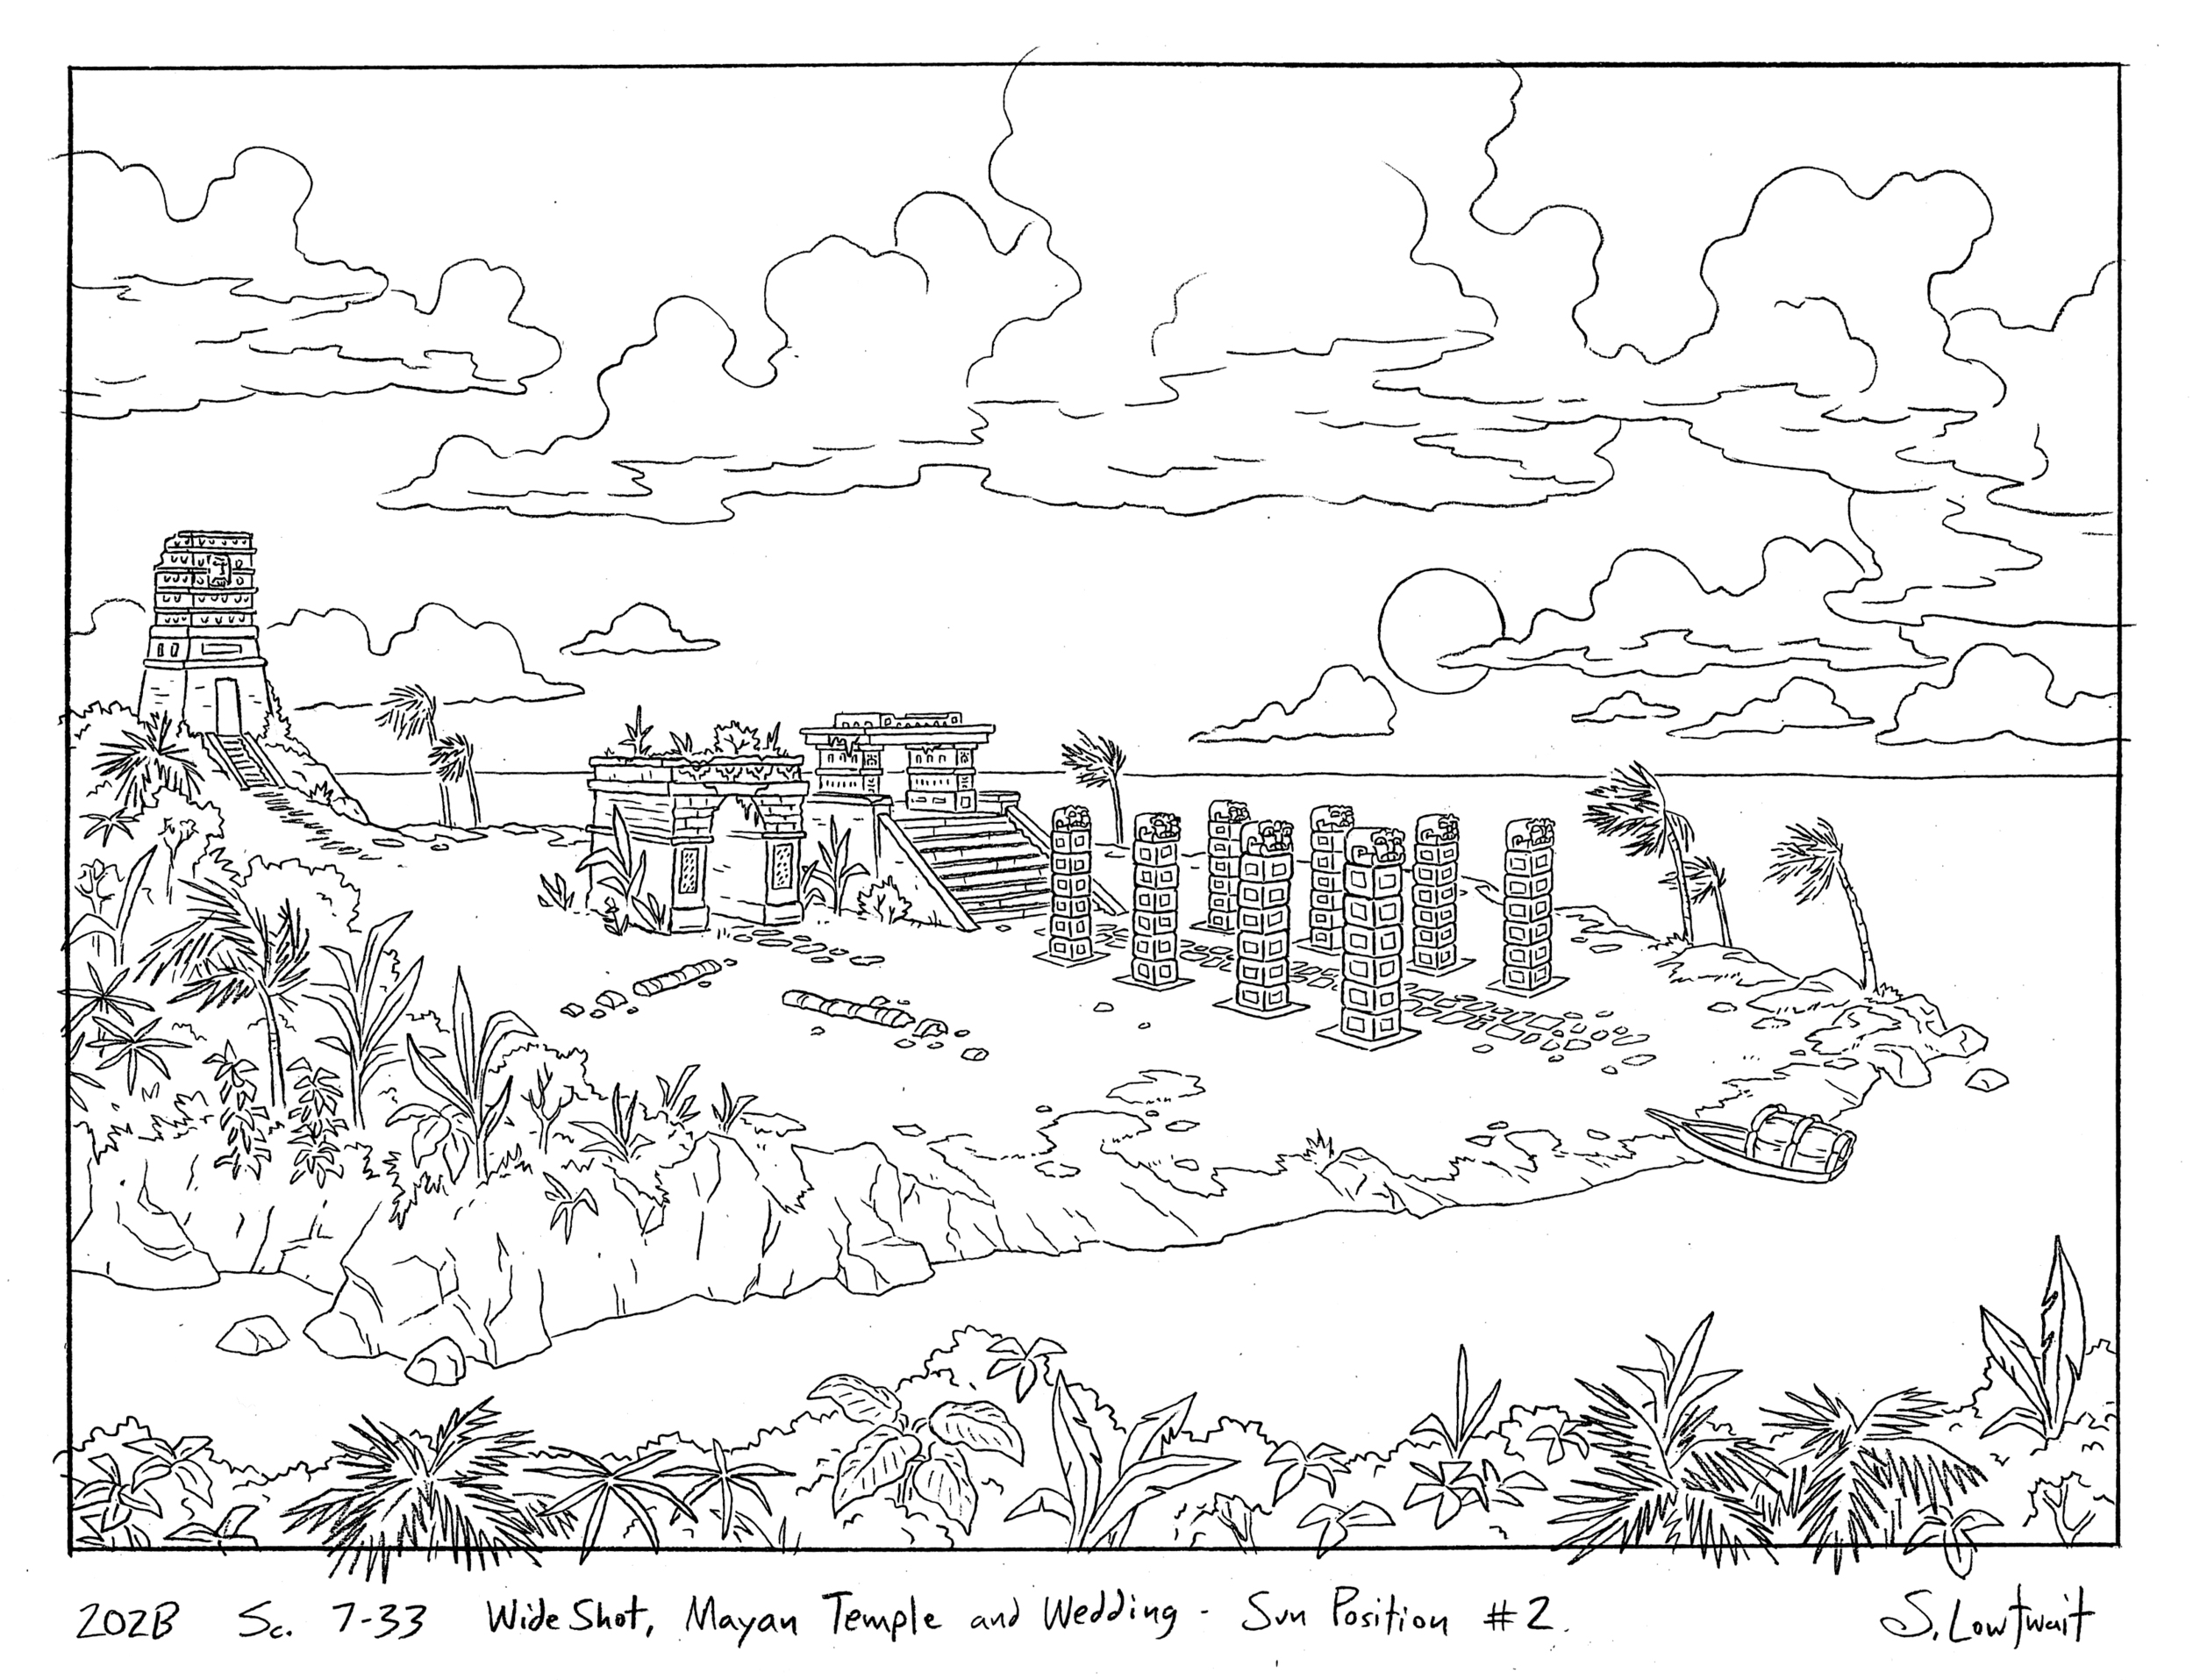 The idyllic tropical setting where Arnold's parents got married - the ruins of a Mayan temple at sunset.